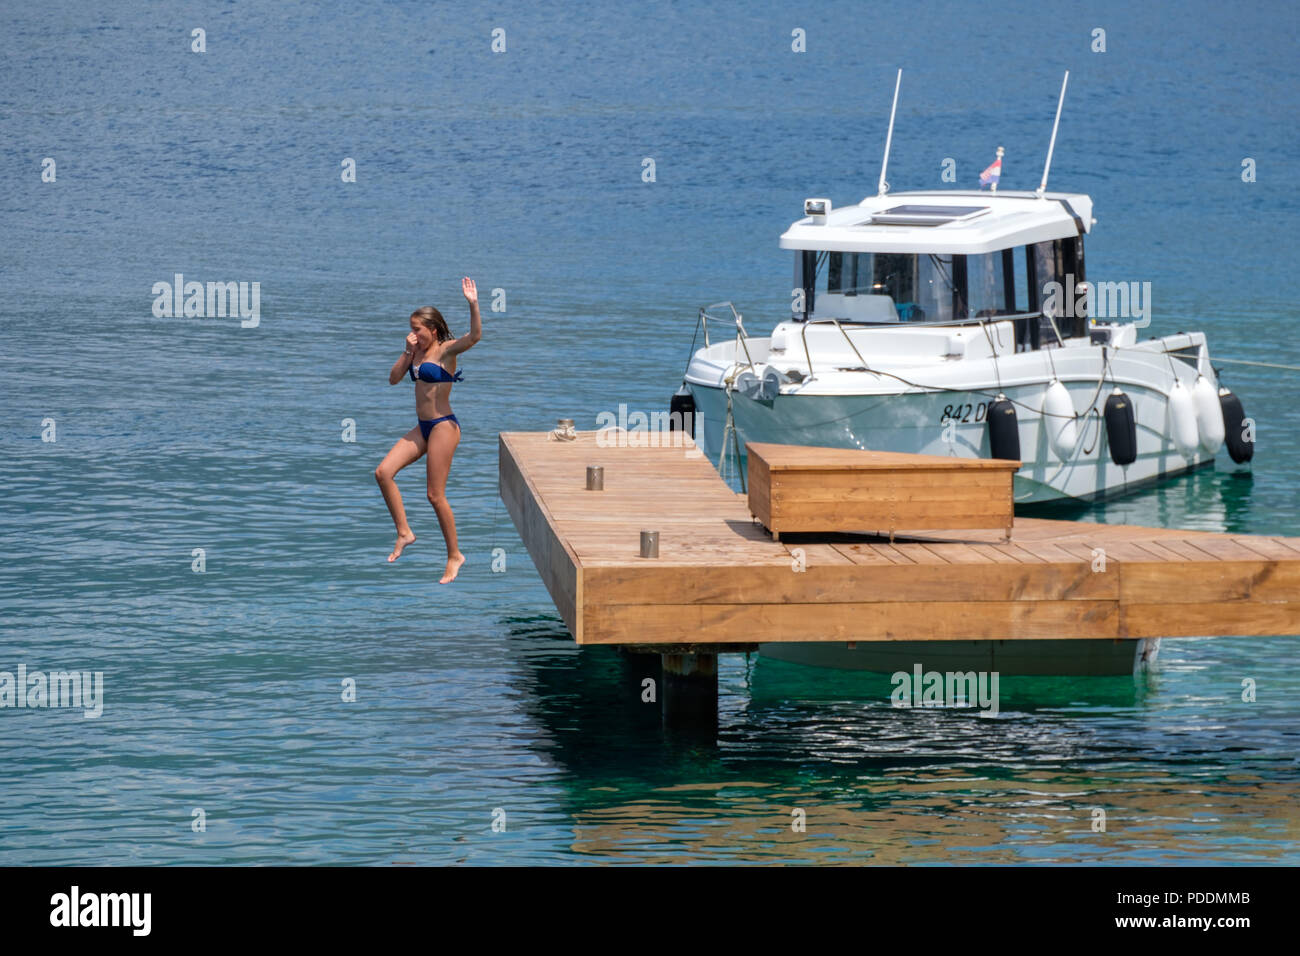 Teenage girl jumping off a dock into the water Stock Photo